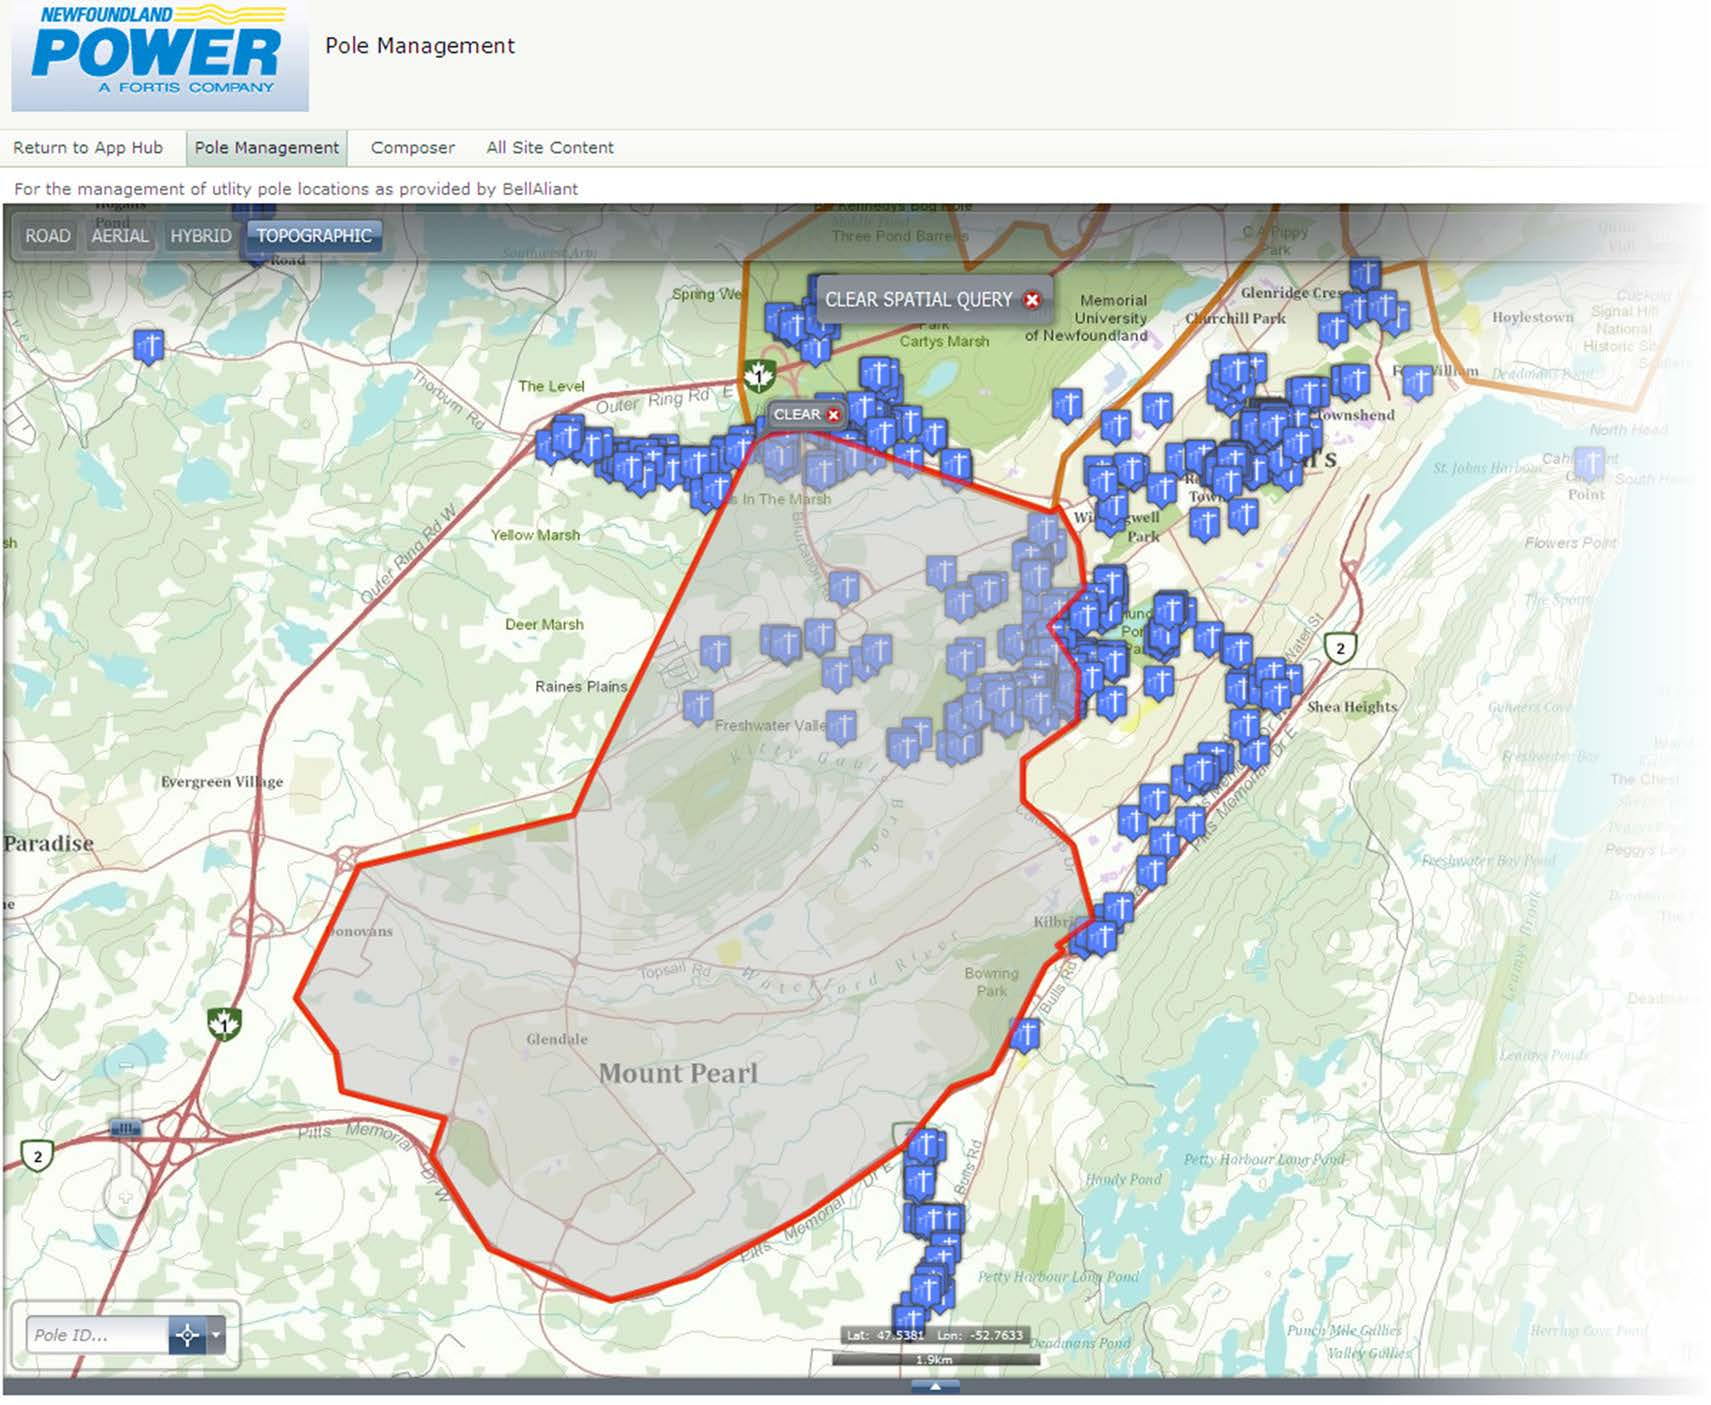 With a single click, users can perform a spatial query on any pole management area